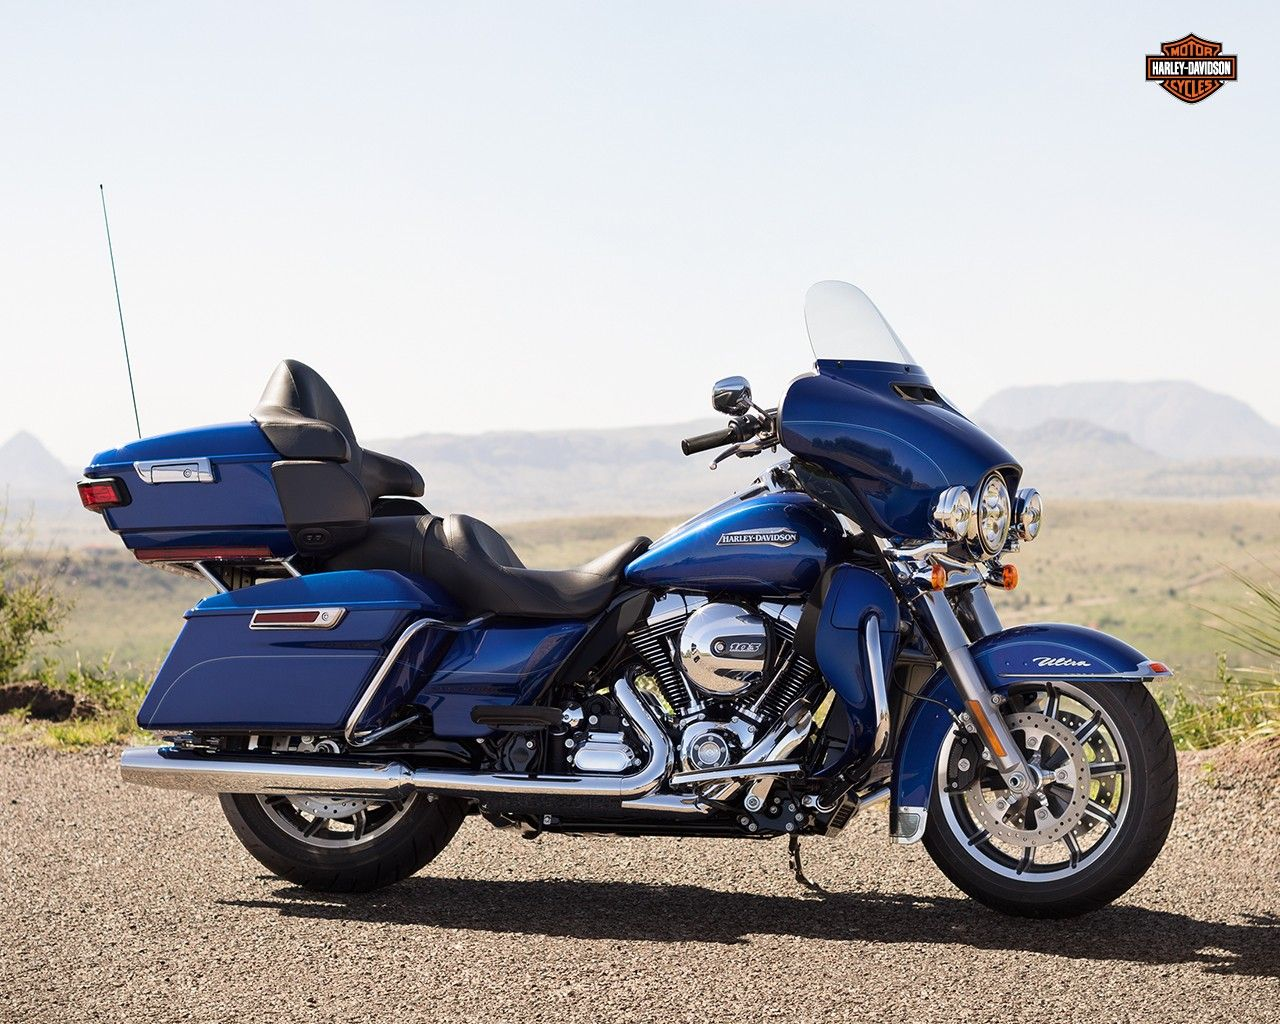 1280x1024 - Harley-Davidson Electra Glide Ultra Classic Wallpapers 15